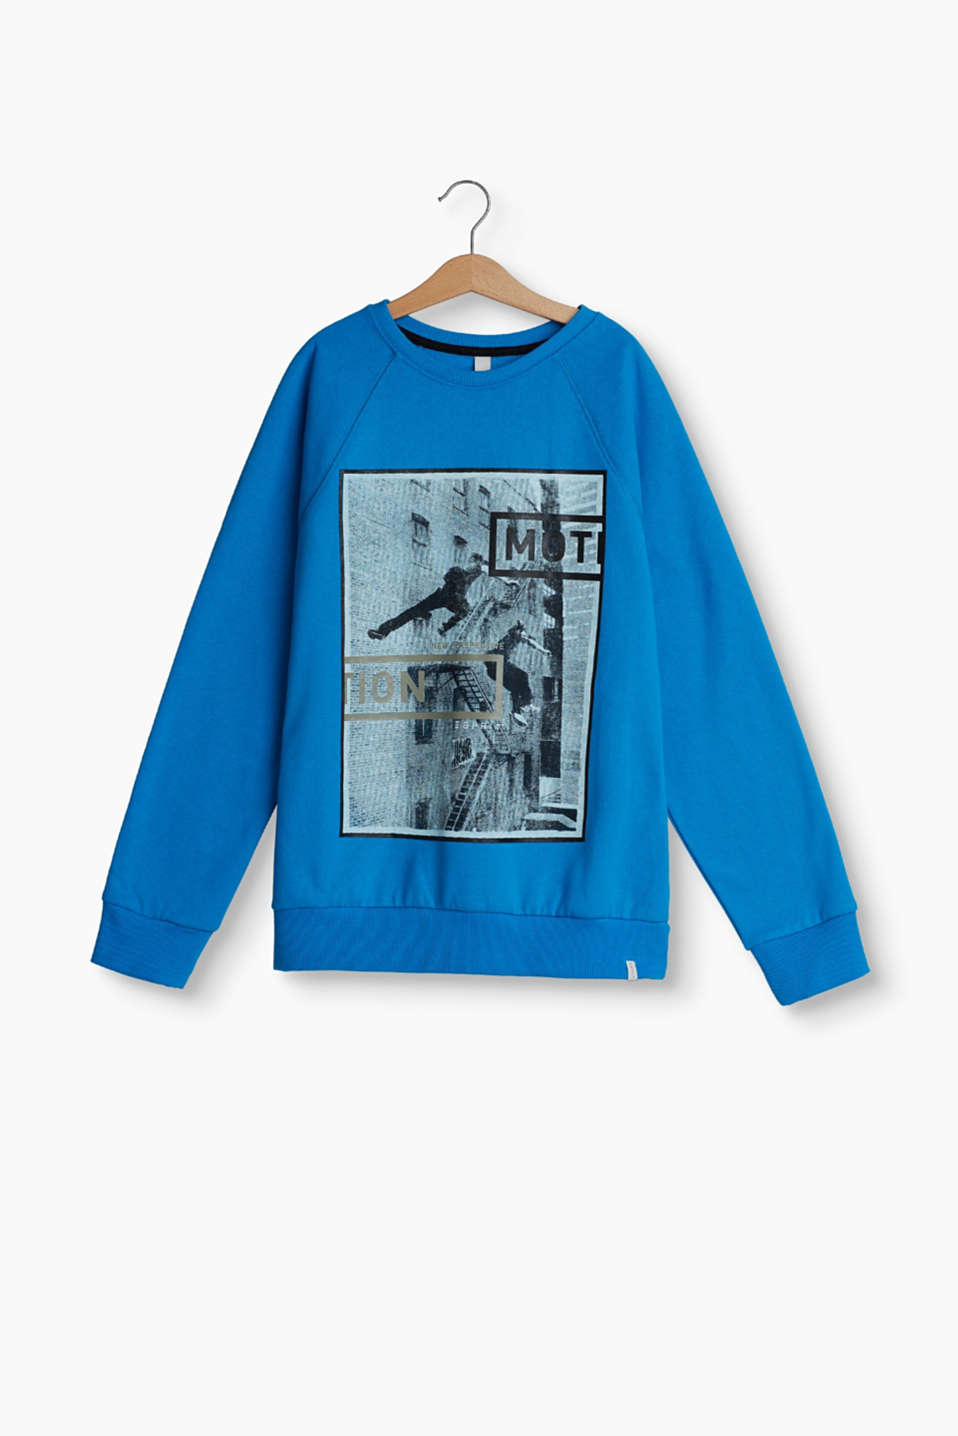 With a cool parkour print in a photo style: pure cotton sweatshirt